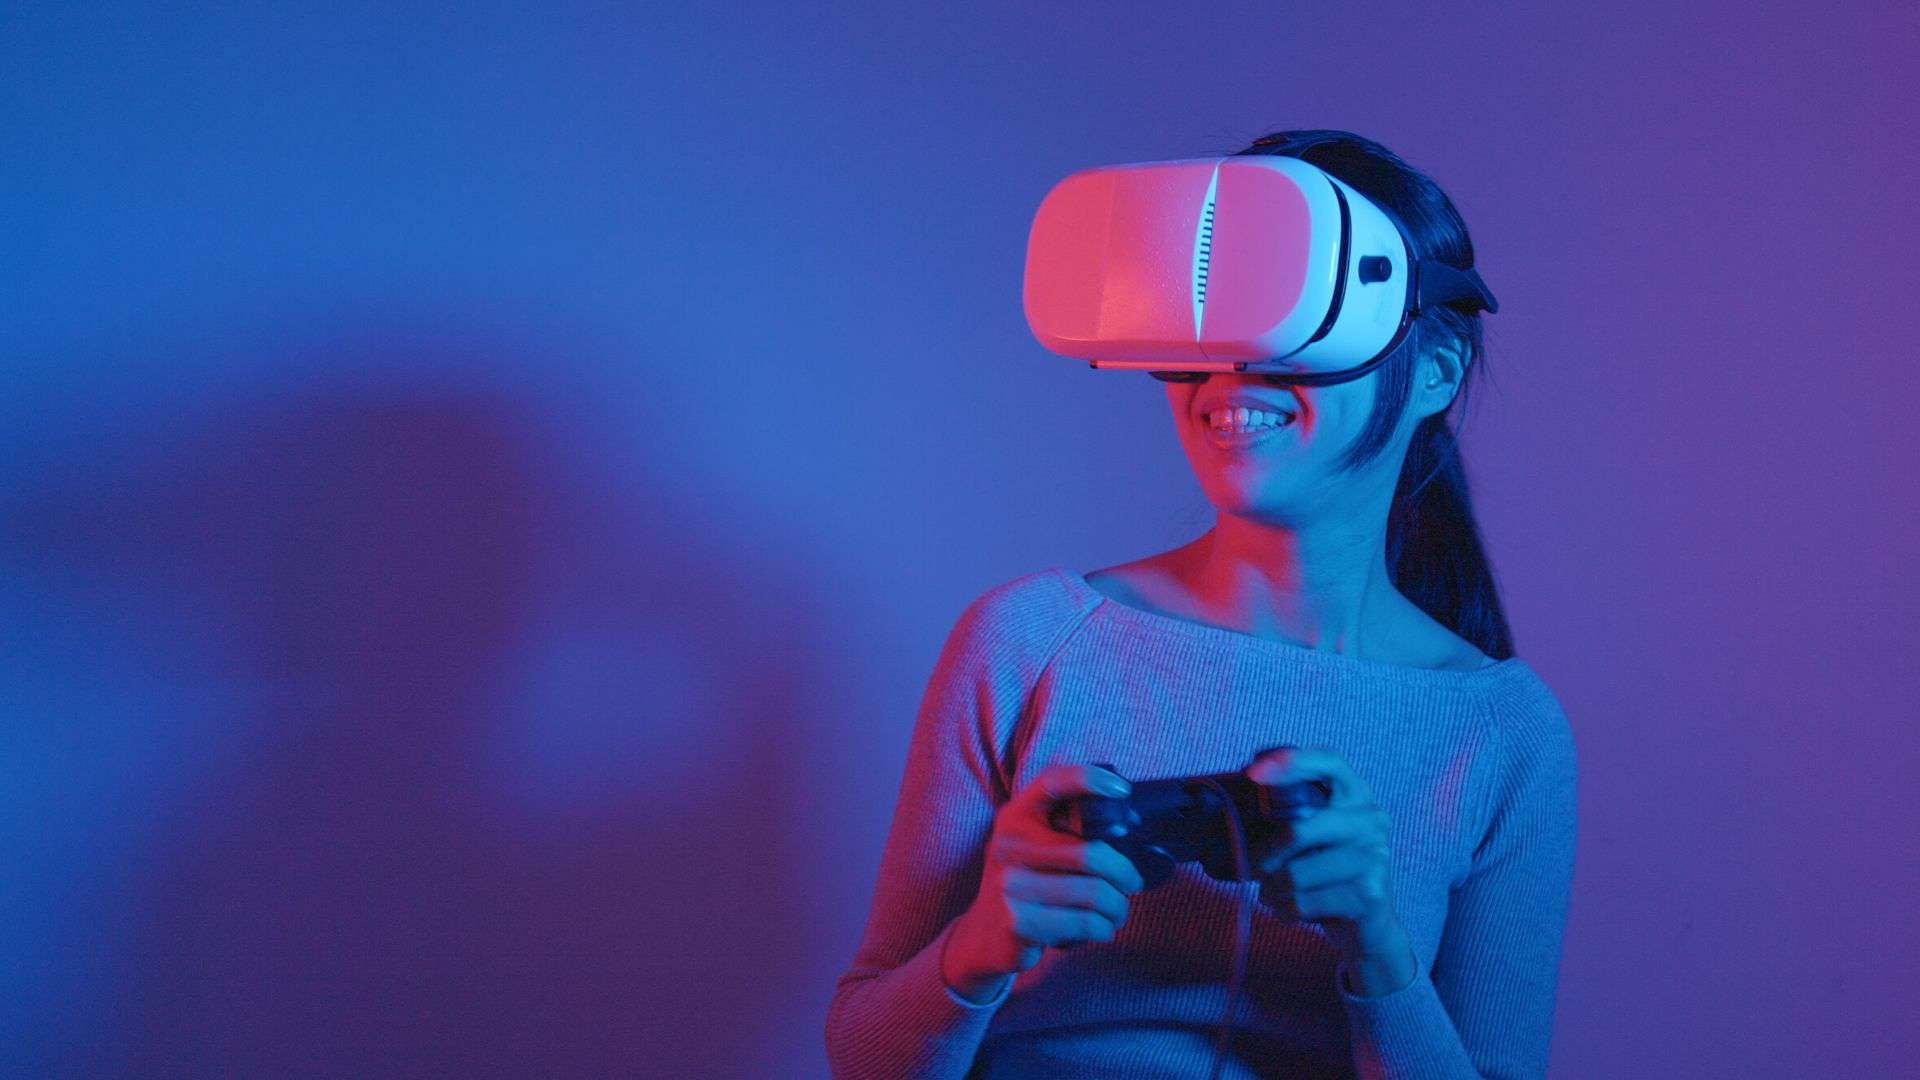 Games for Play Station VR